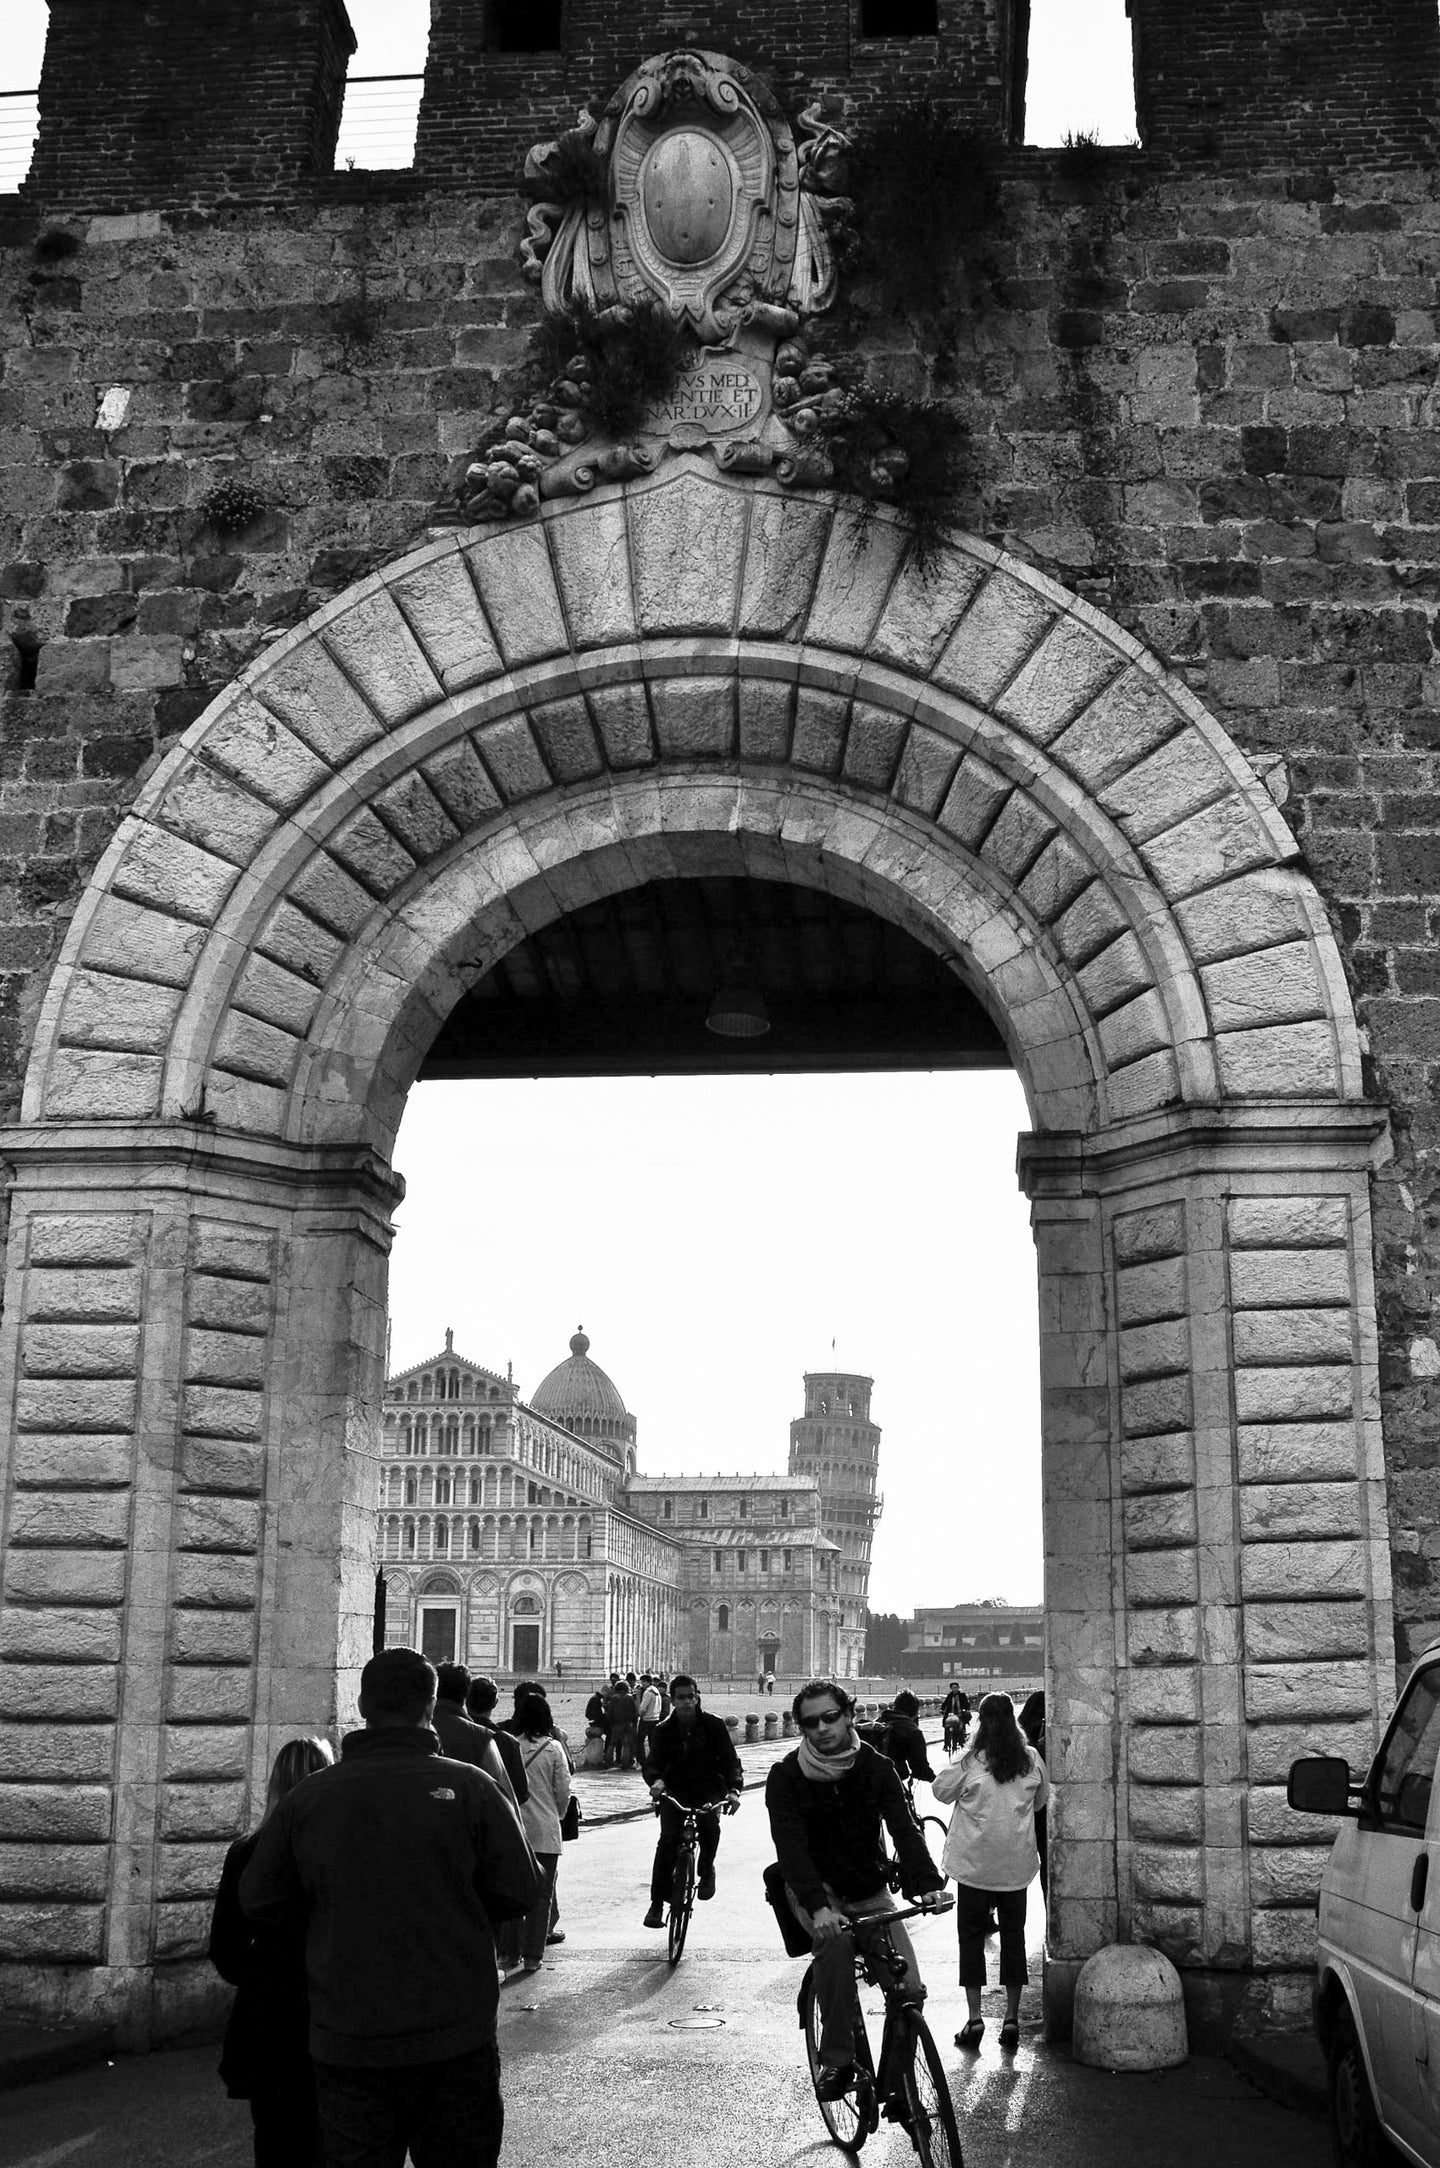 Doorway to Pisa - People In Italy